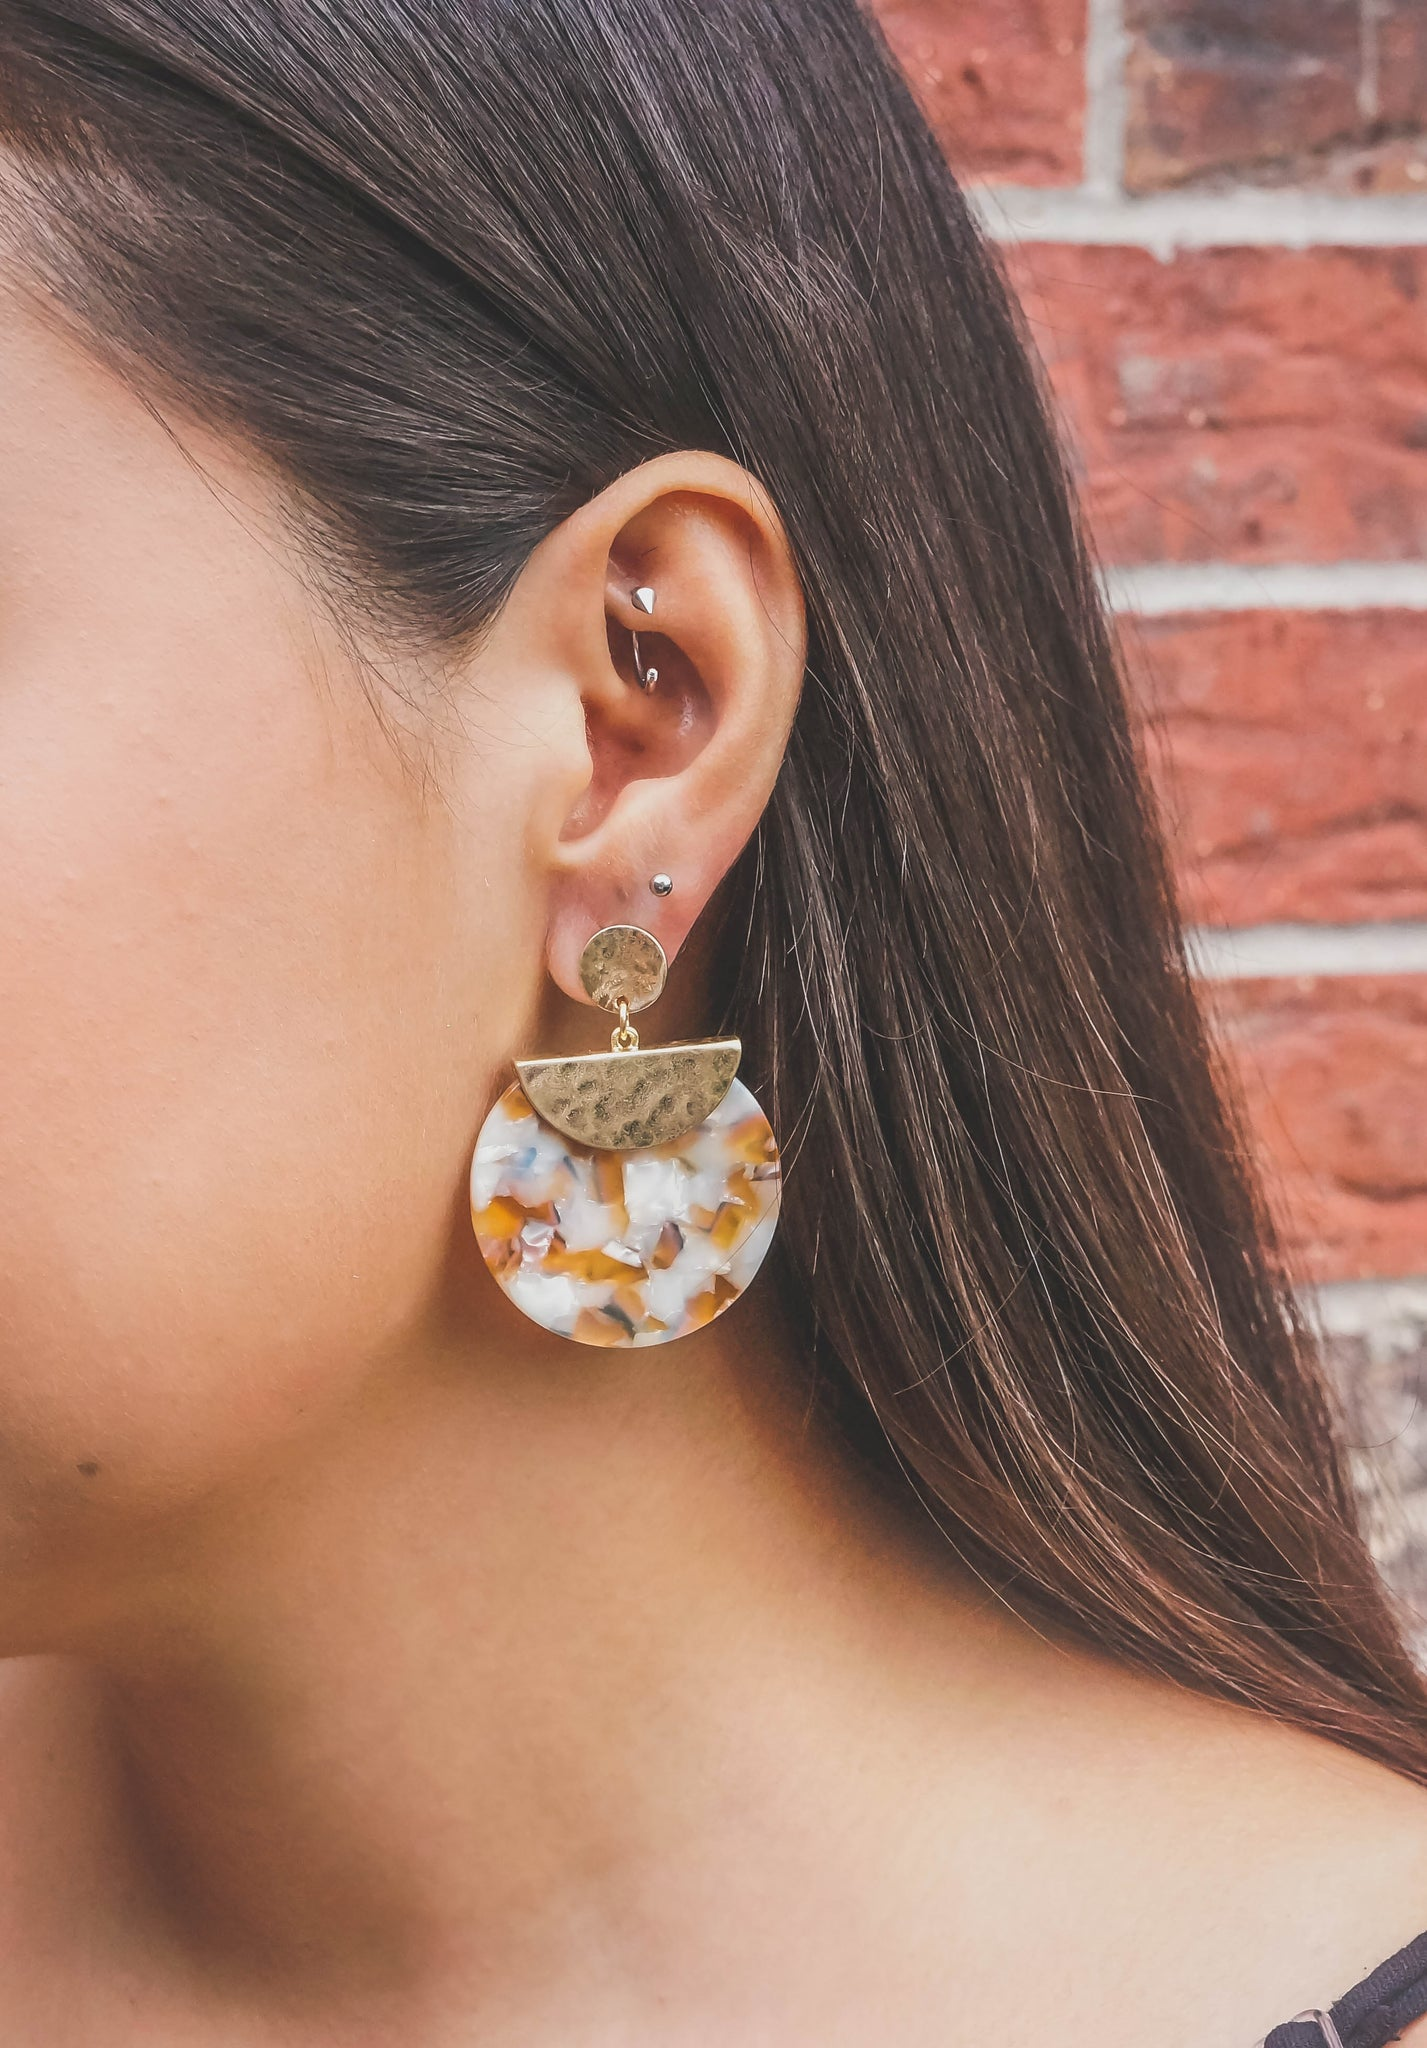 Sunset Isle Worn Gold and Multi Colored Resin Earring